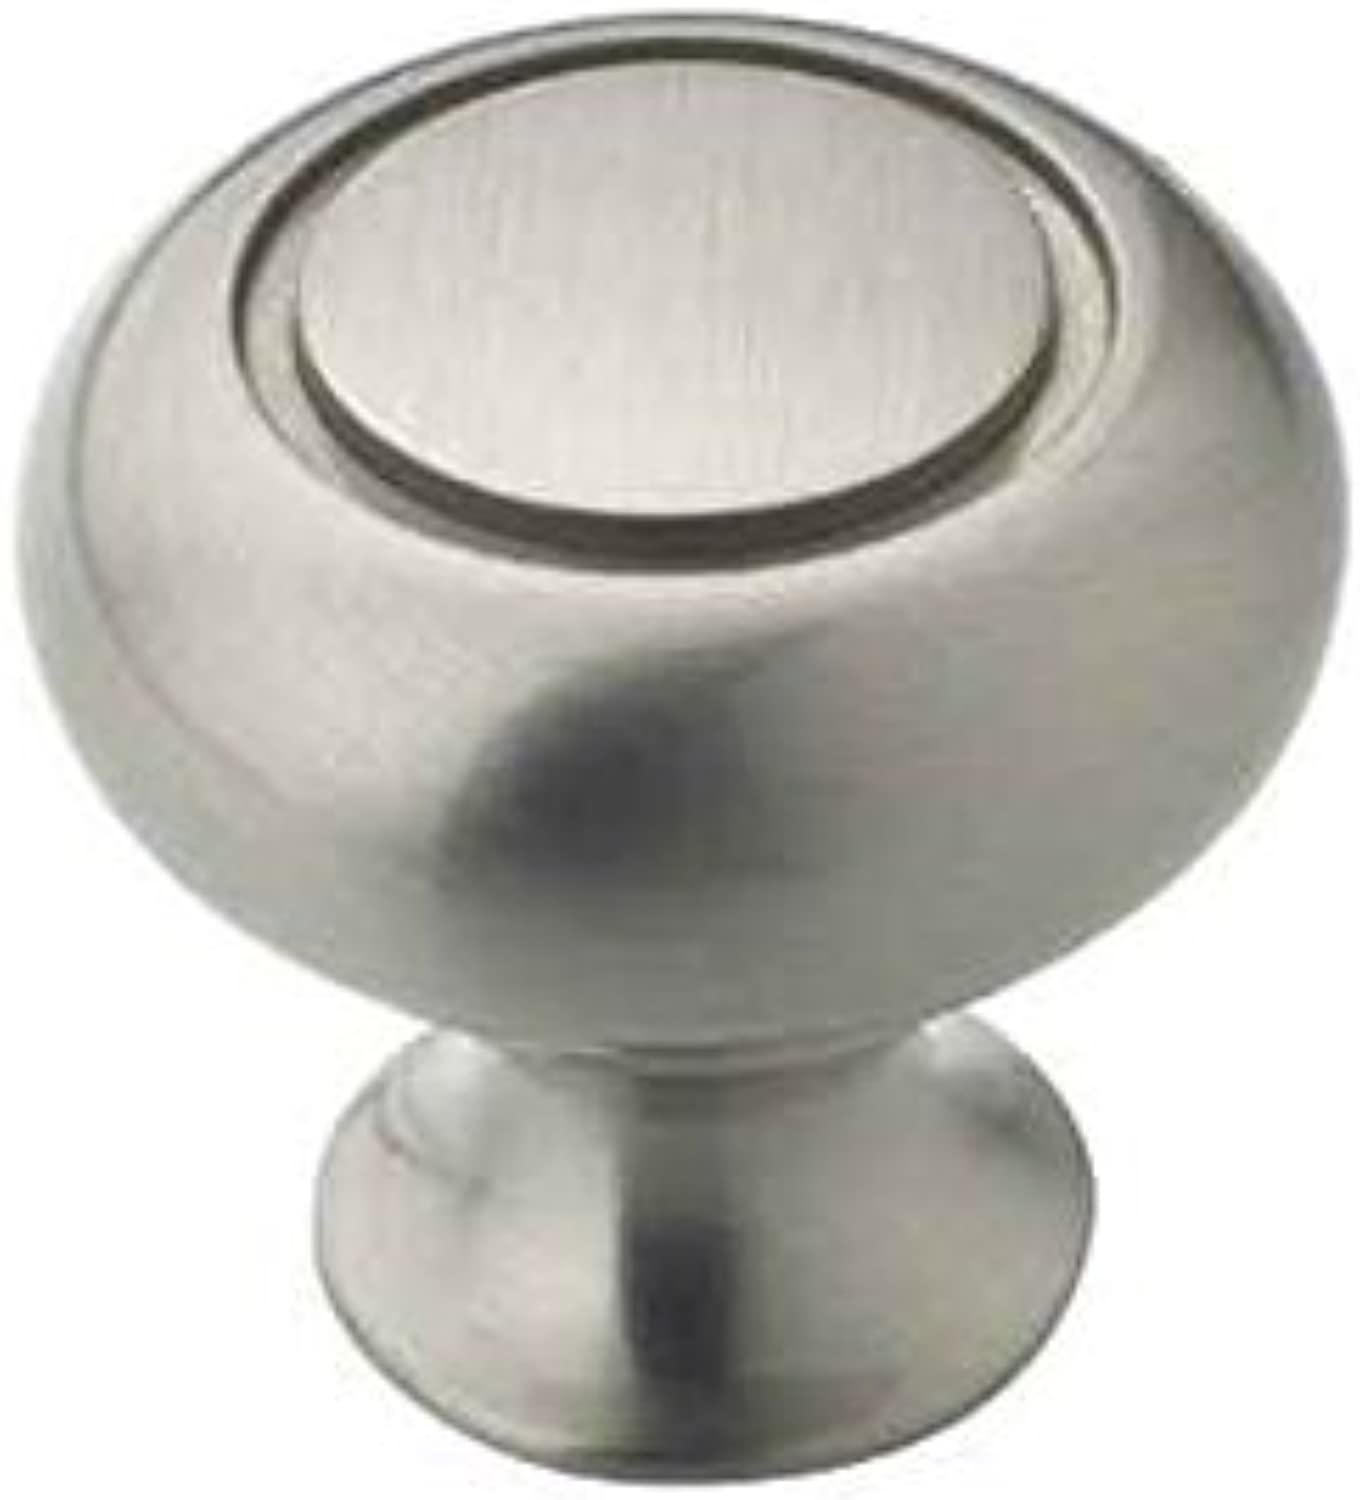 Allison Ring Cabinet Knob (Pack of 10) by Amerock